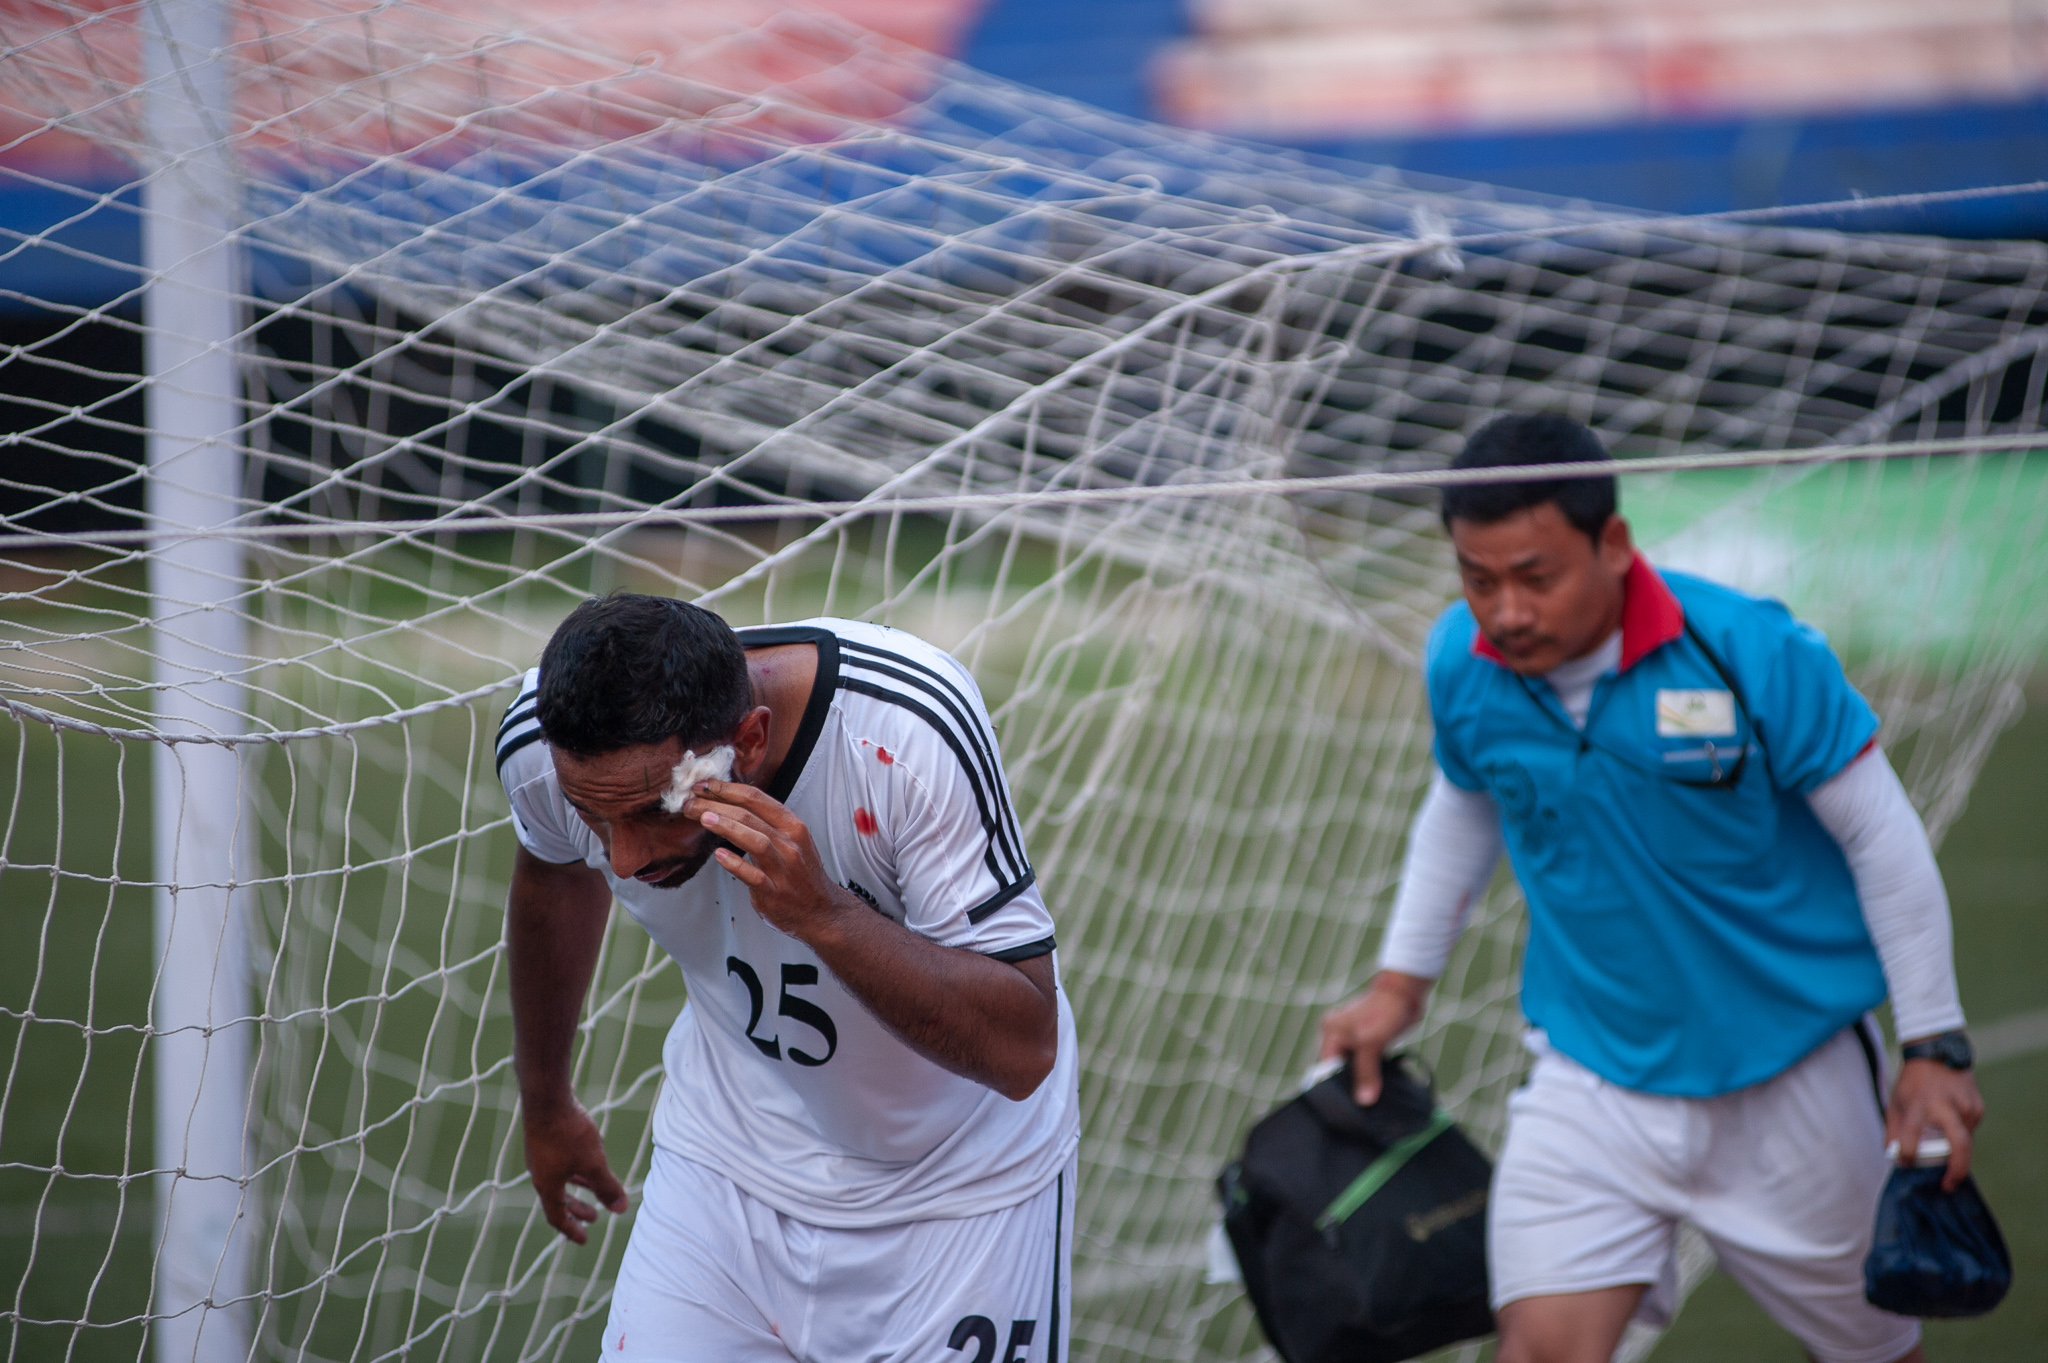 A Mohammedan Sporting player comes off briefly due to a head injury. He is seen here navigating his way to the bench from behind his goal.